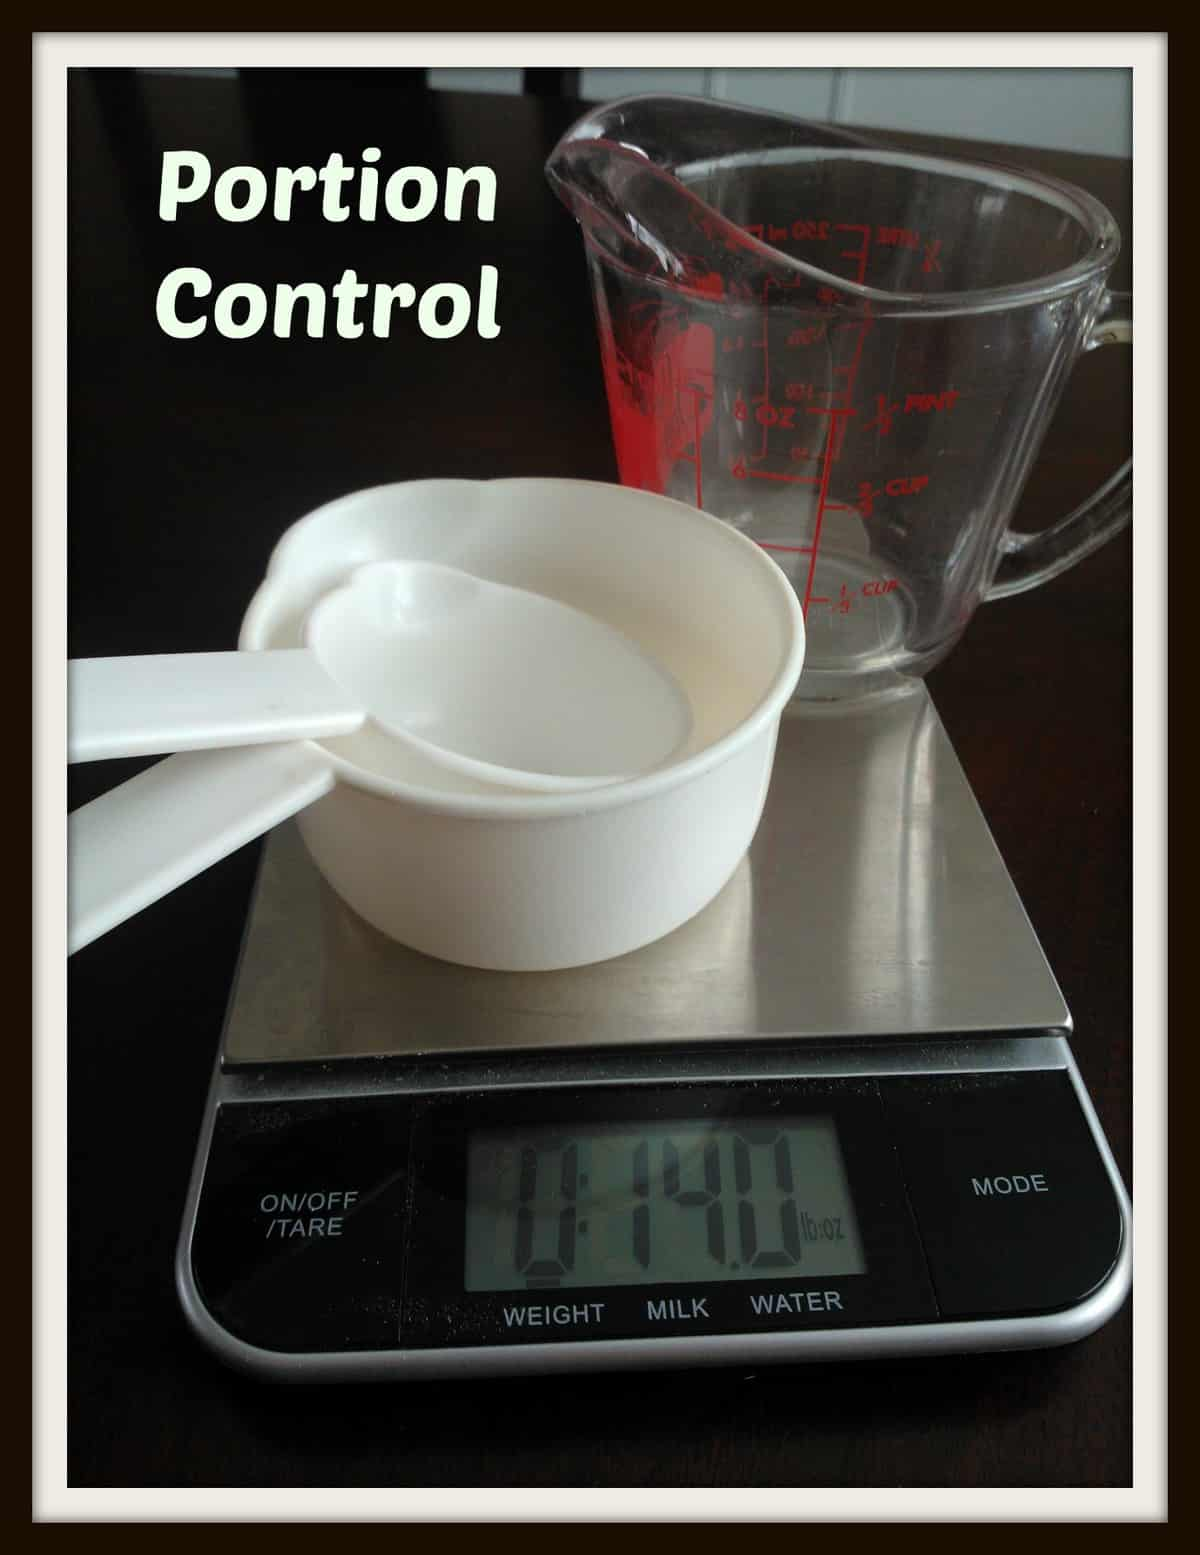 How to Control Your Portions in Restaurants #organizeyourselfskinny #portioncontrol #weightloss